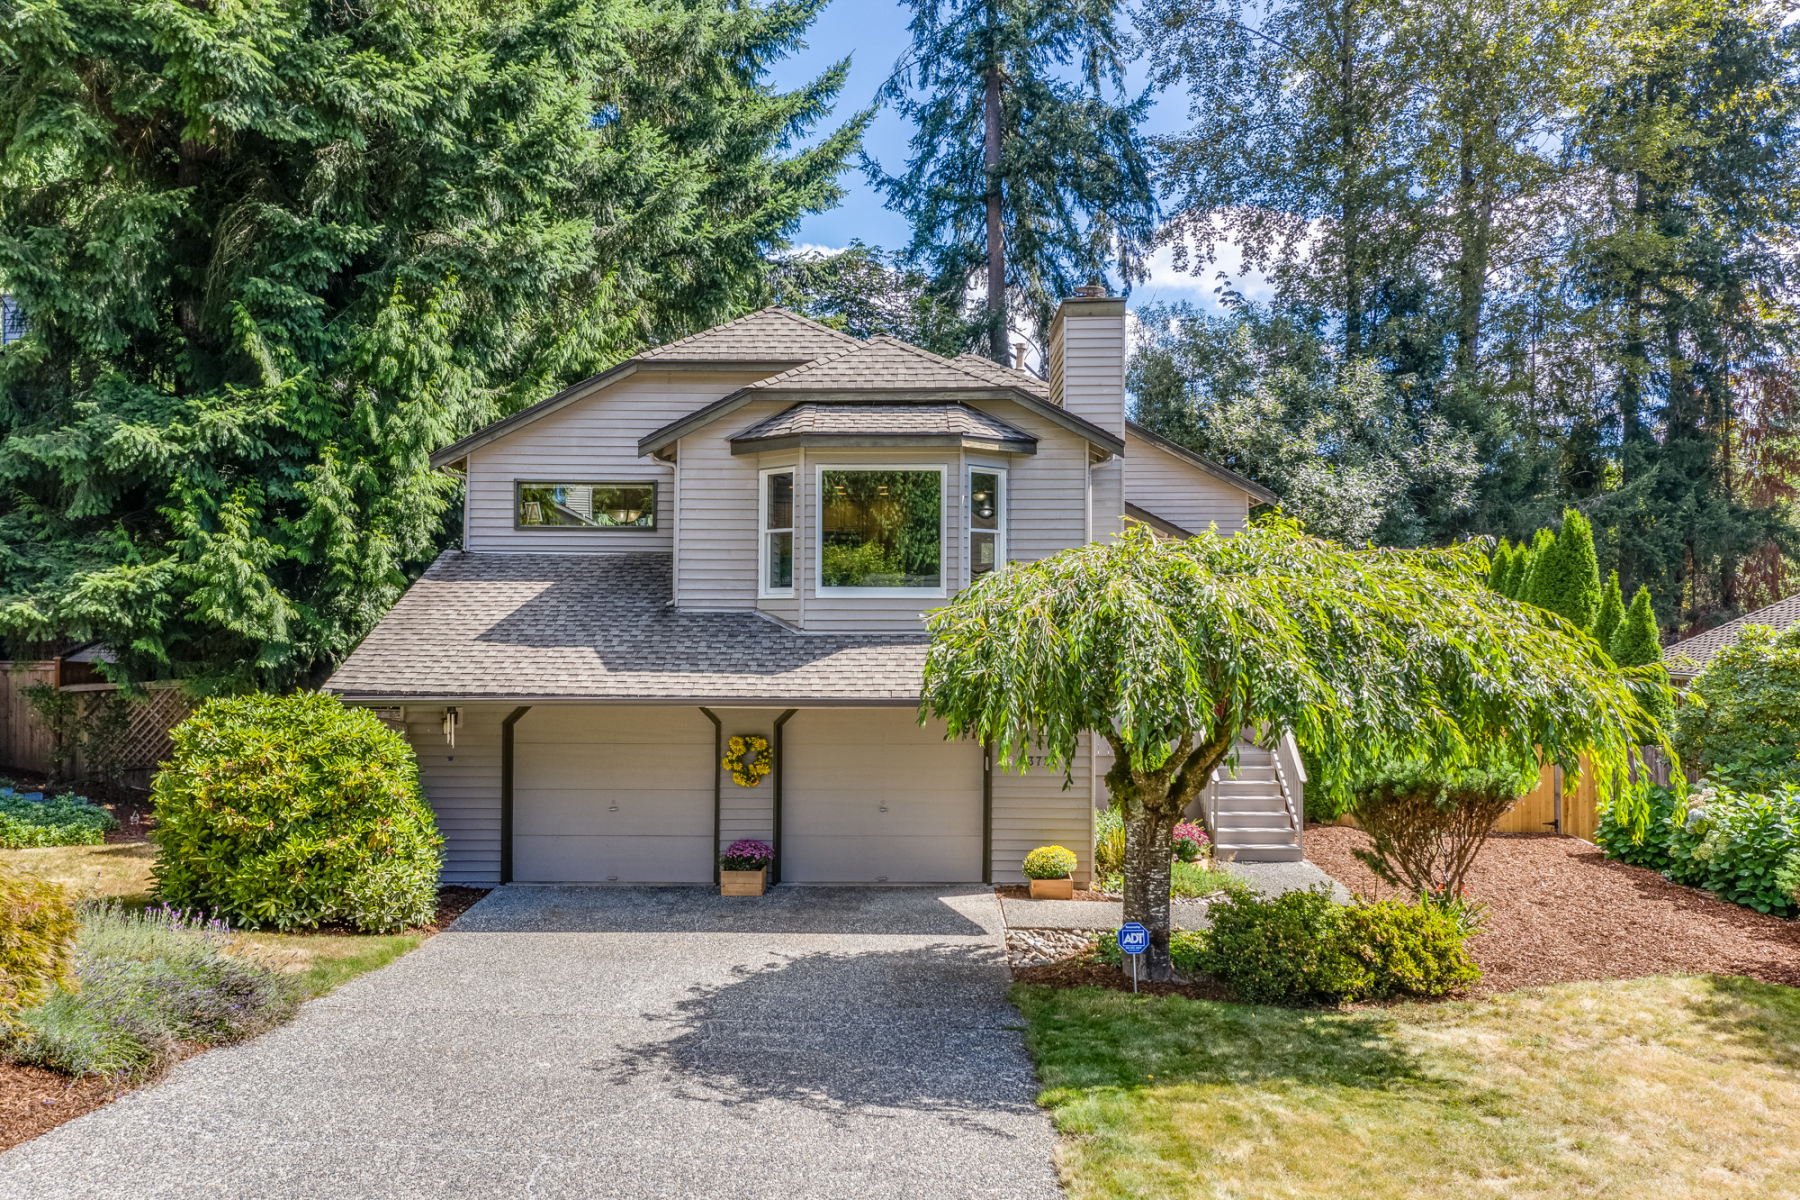 13724-176th-Ave-NE-Redmond-2